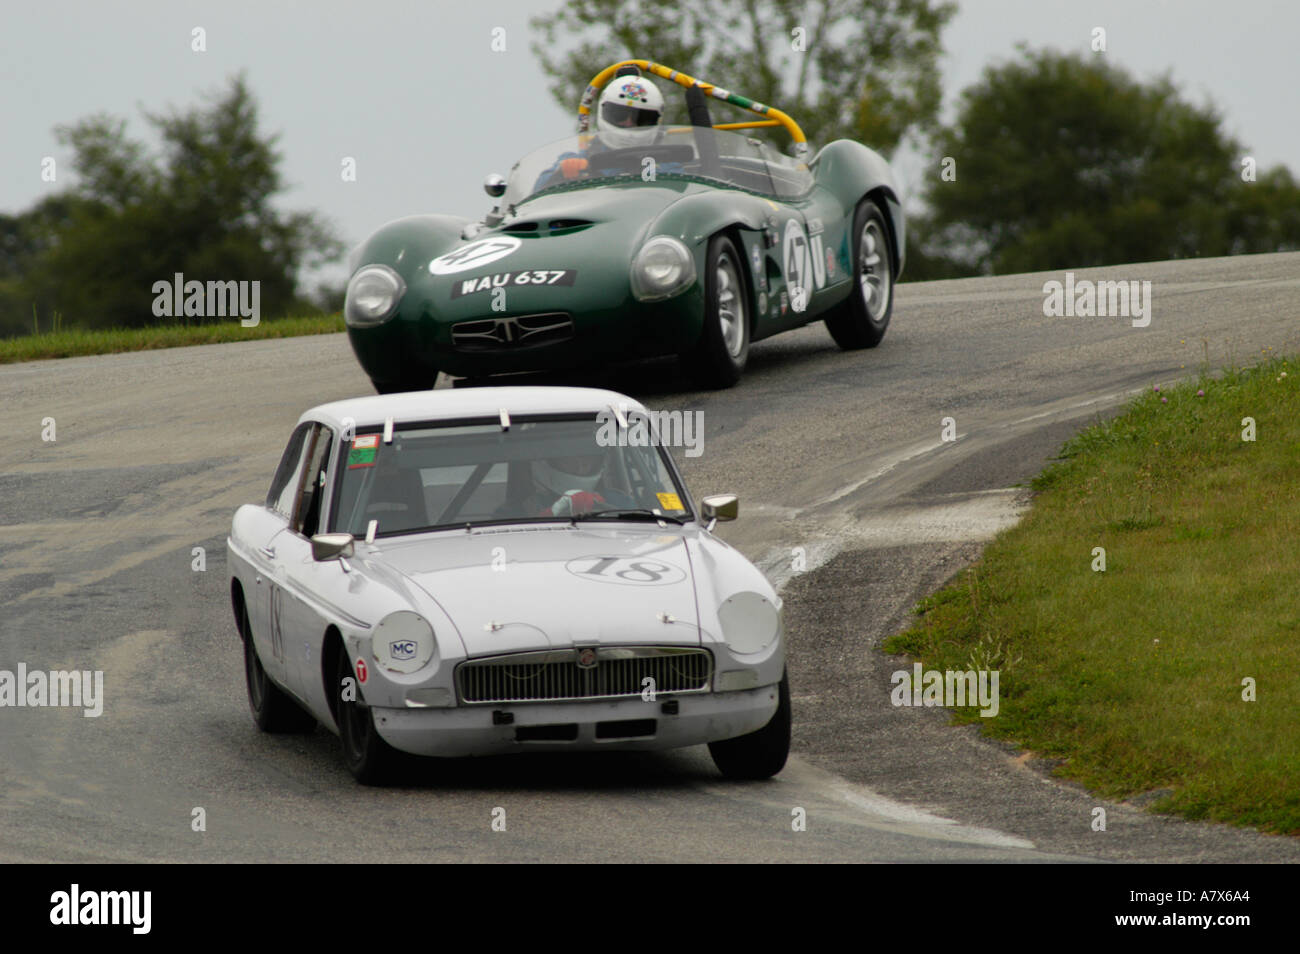 John Golanty in his 1973 MGB GT followed by Bob Wismer in his 1959 Tornado Thunderbolt at the Vintage Grand Prix Au Grattan - Stock Image